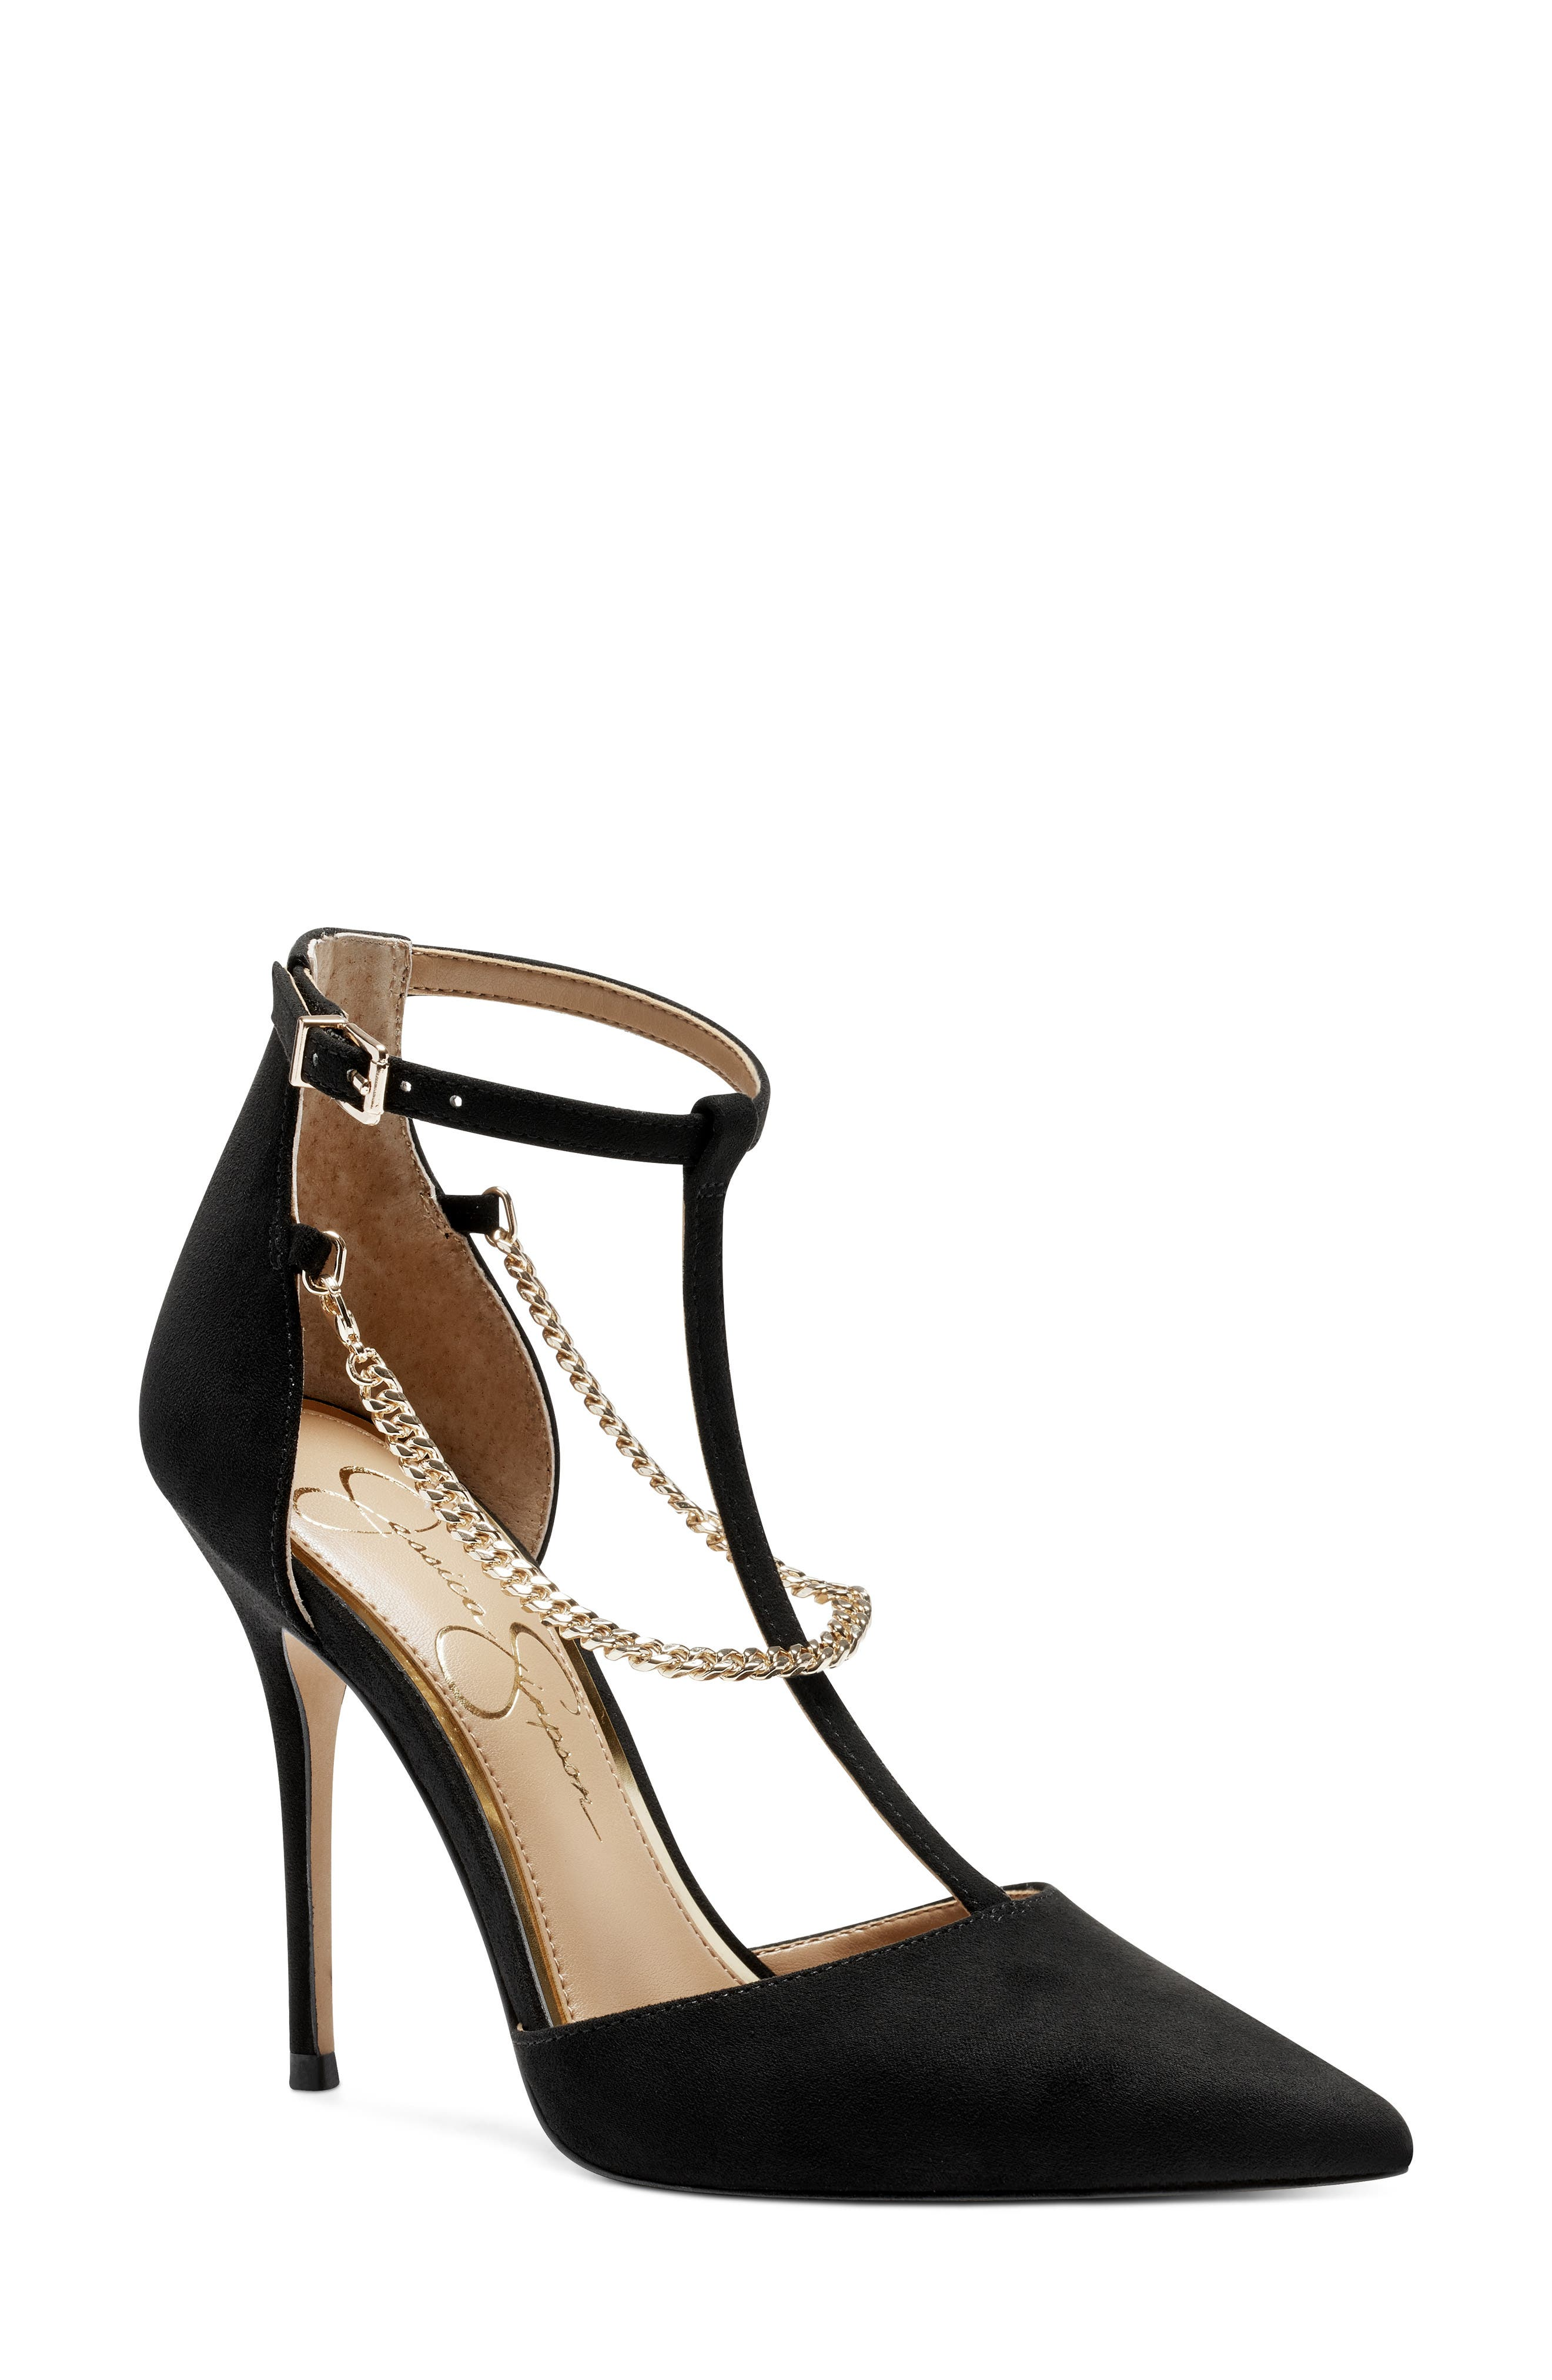 Gleaming chains add a bit of edge to a pointy-toe pump topped with a slender ankle strap. Style Name: Jessica Simpson Wintelle Ankle Strap Pump (Women). Style Number: 6101944. Available in stores.